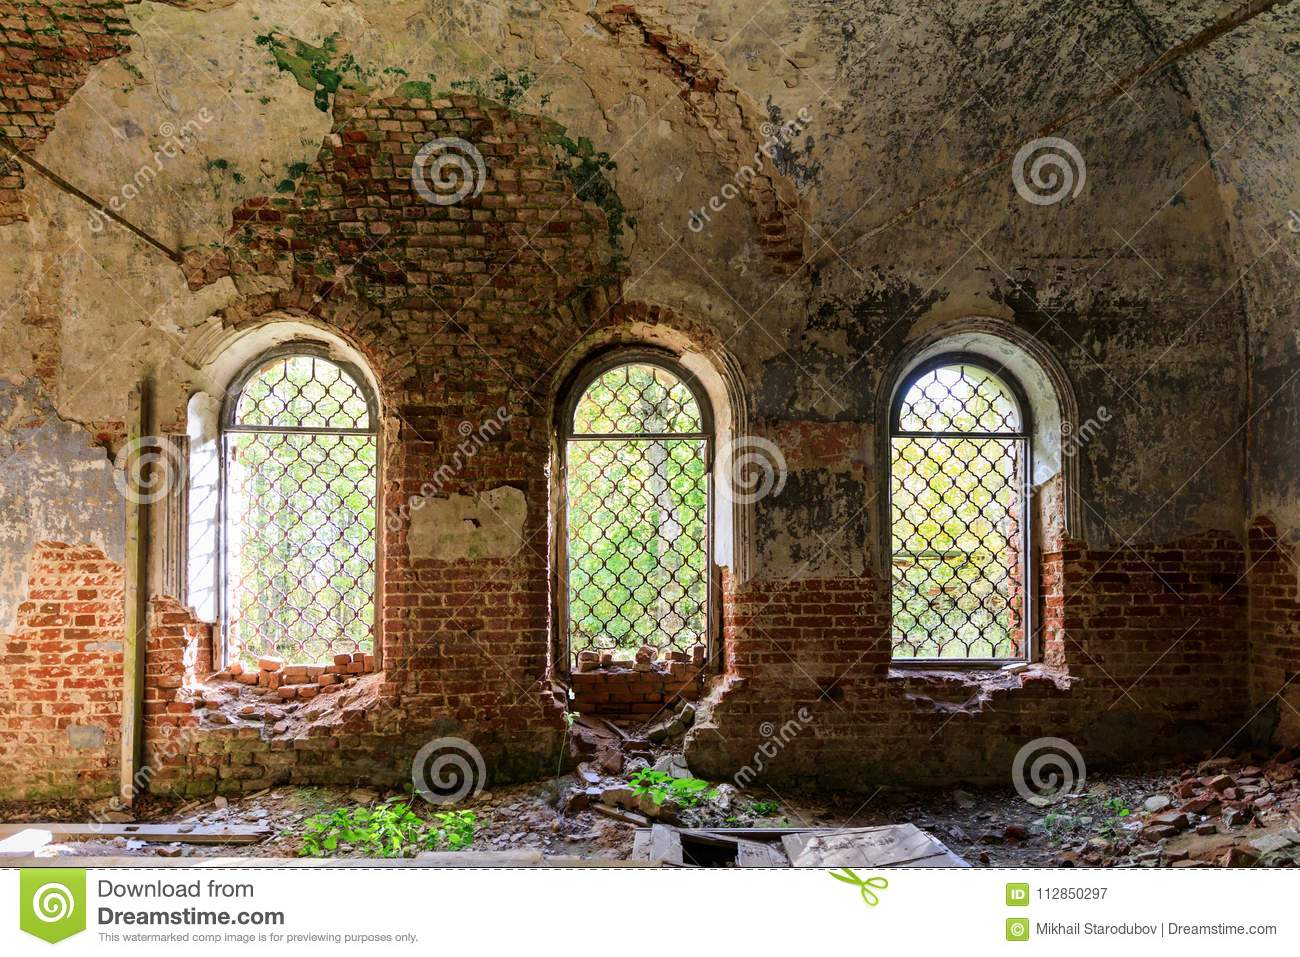 Details of the interior of the destroyed Orthodox Church of St. George the Victorious in the forests of the Kostroma